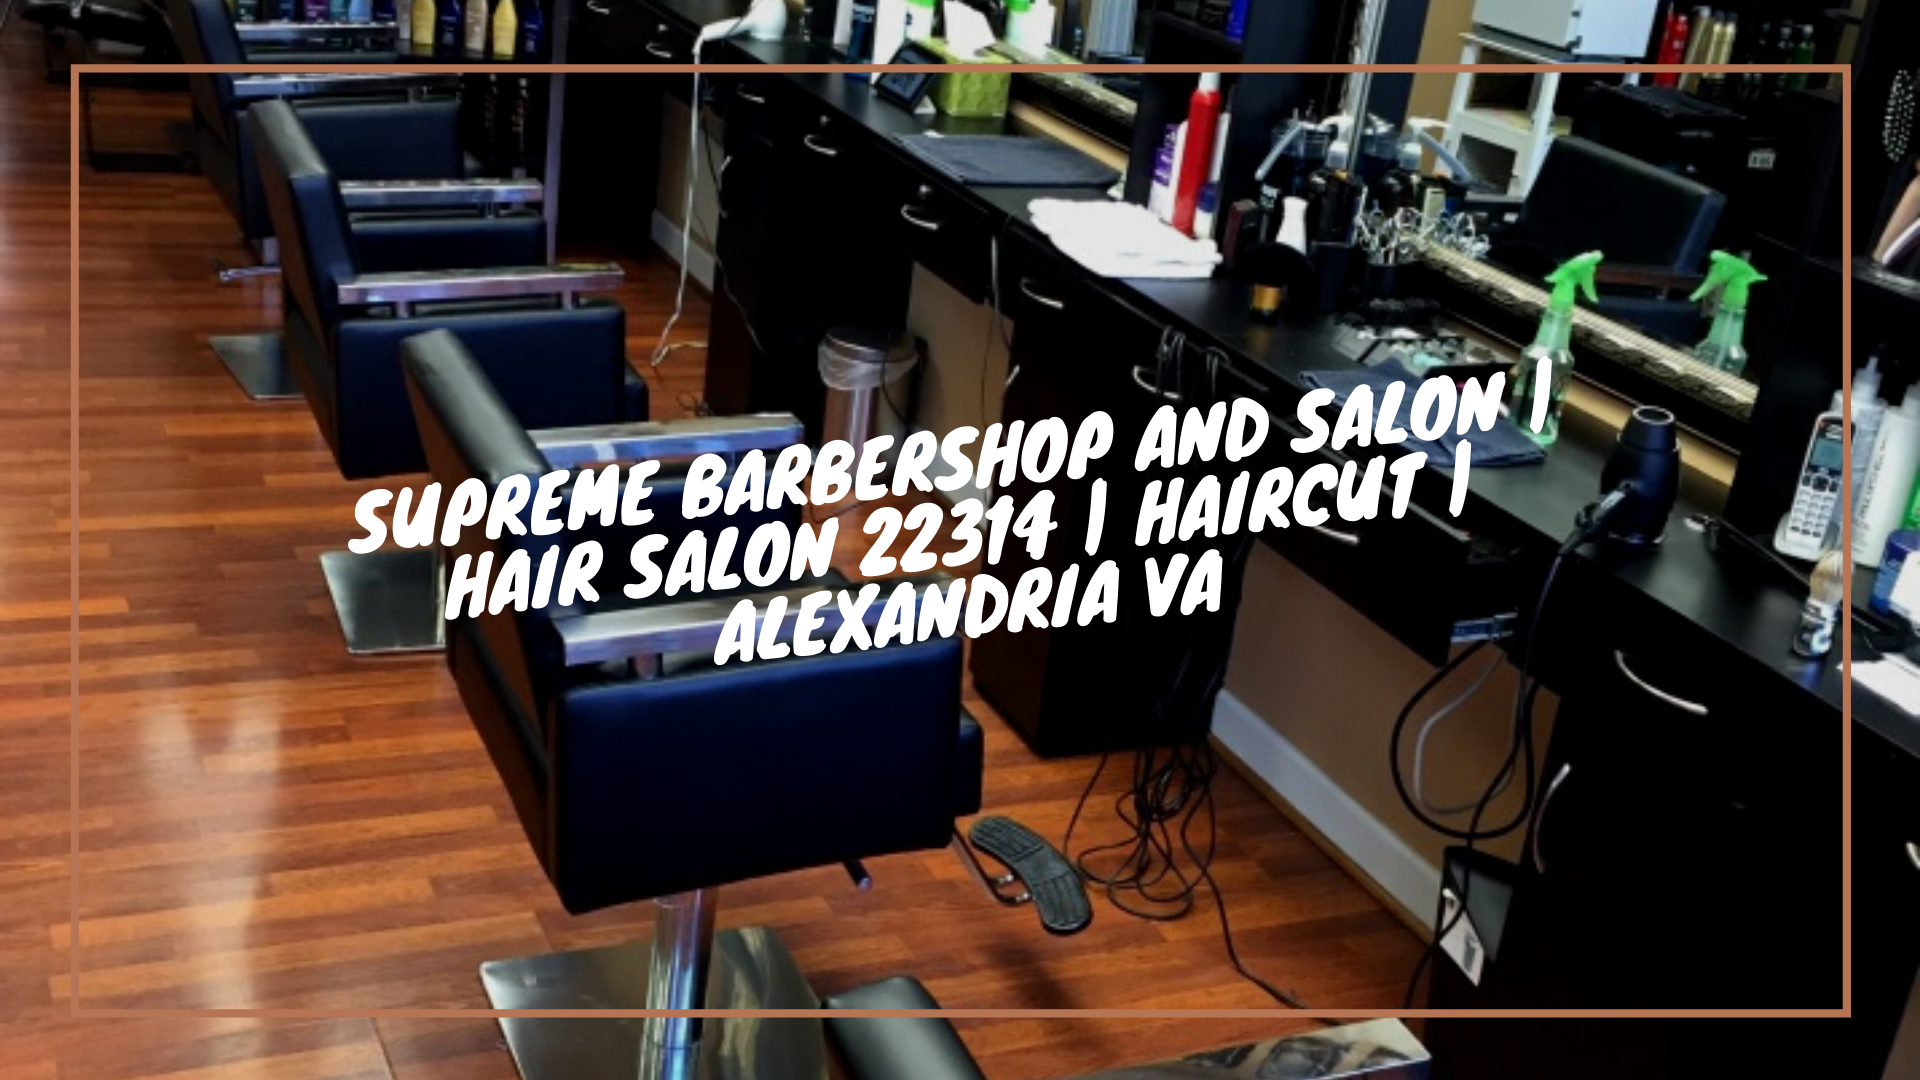 What a nice day to come to Supreme Barbershop and Salon | Hair salon 22314 | Haircut